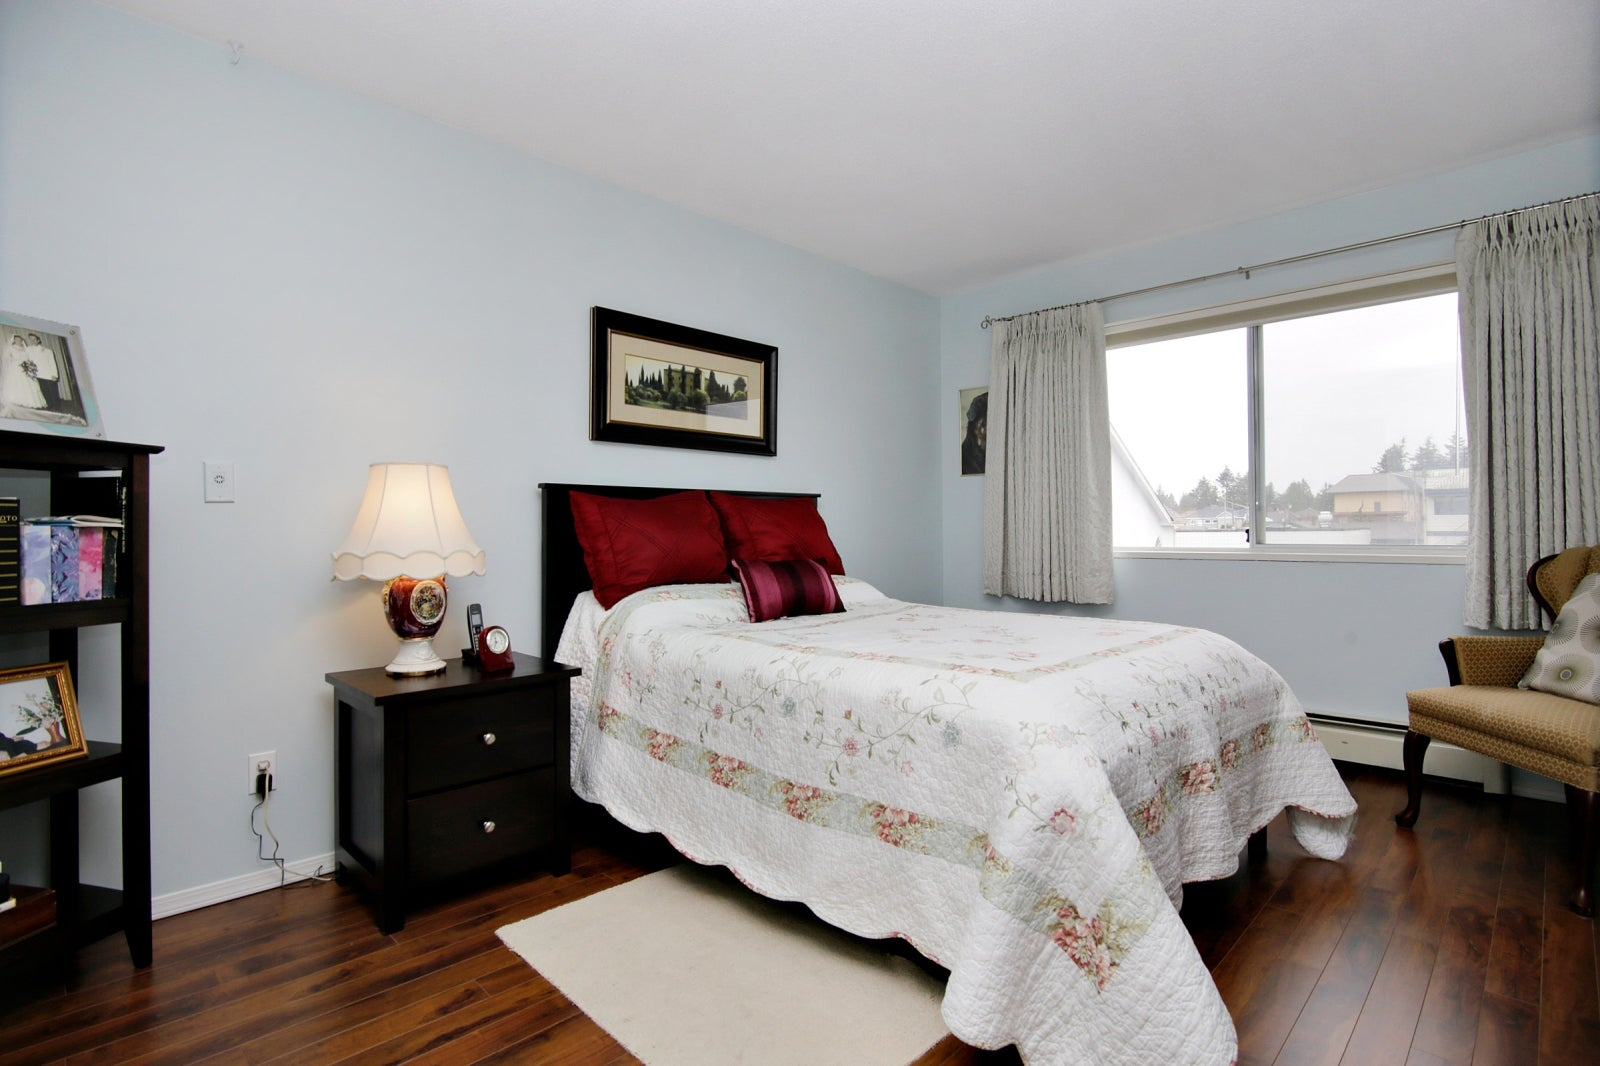 210 2425 CHURCH STREET - Abbotsford West Apartment/Condo for sale, 2 Bedrooms (R2251162) #8